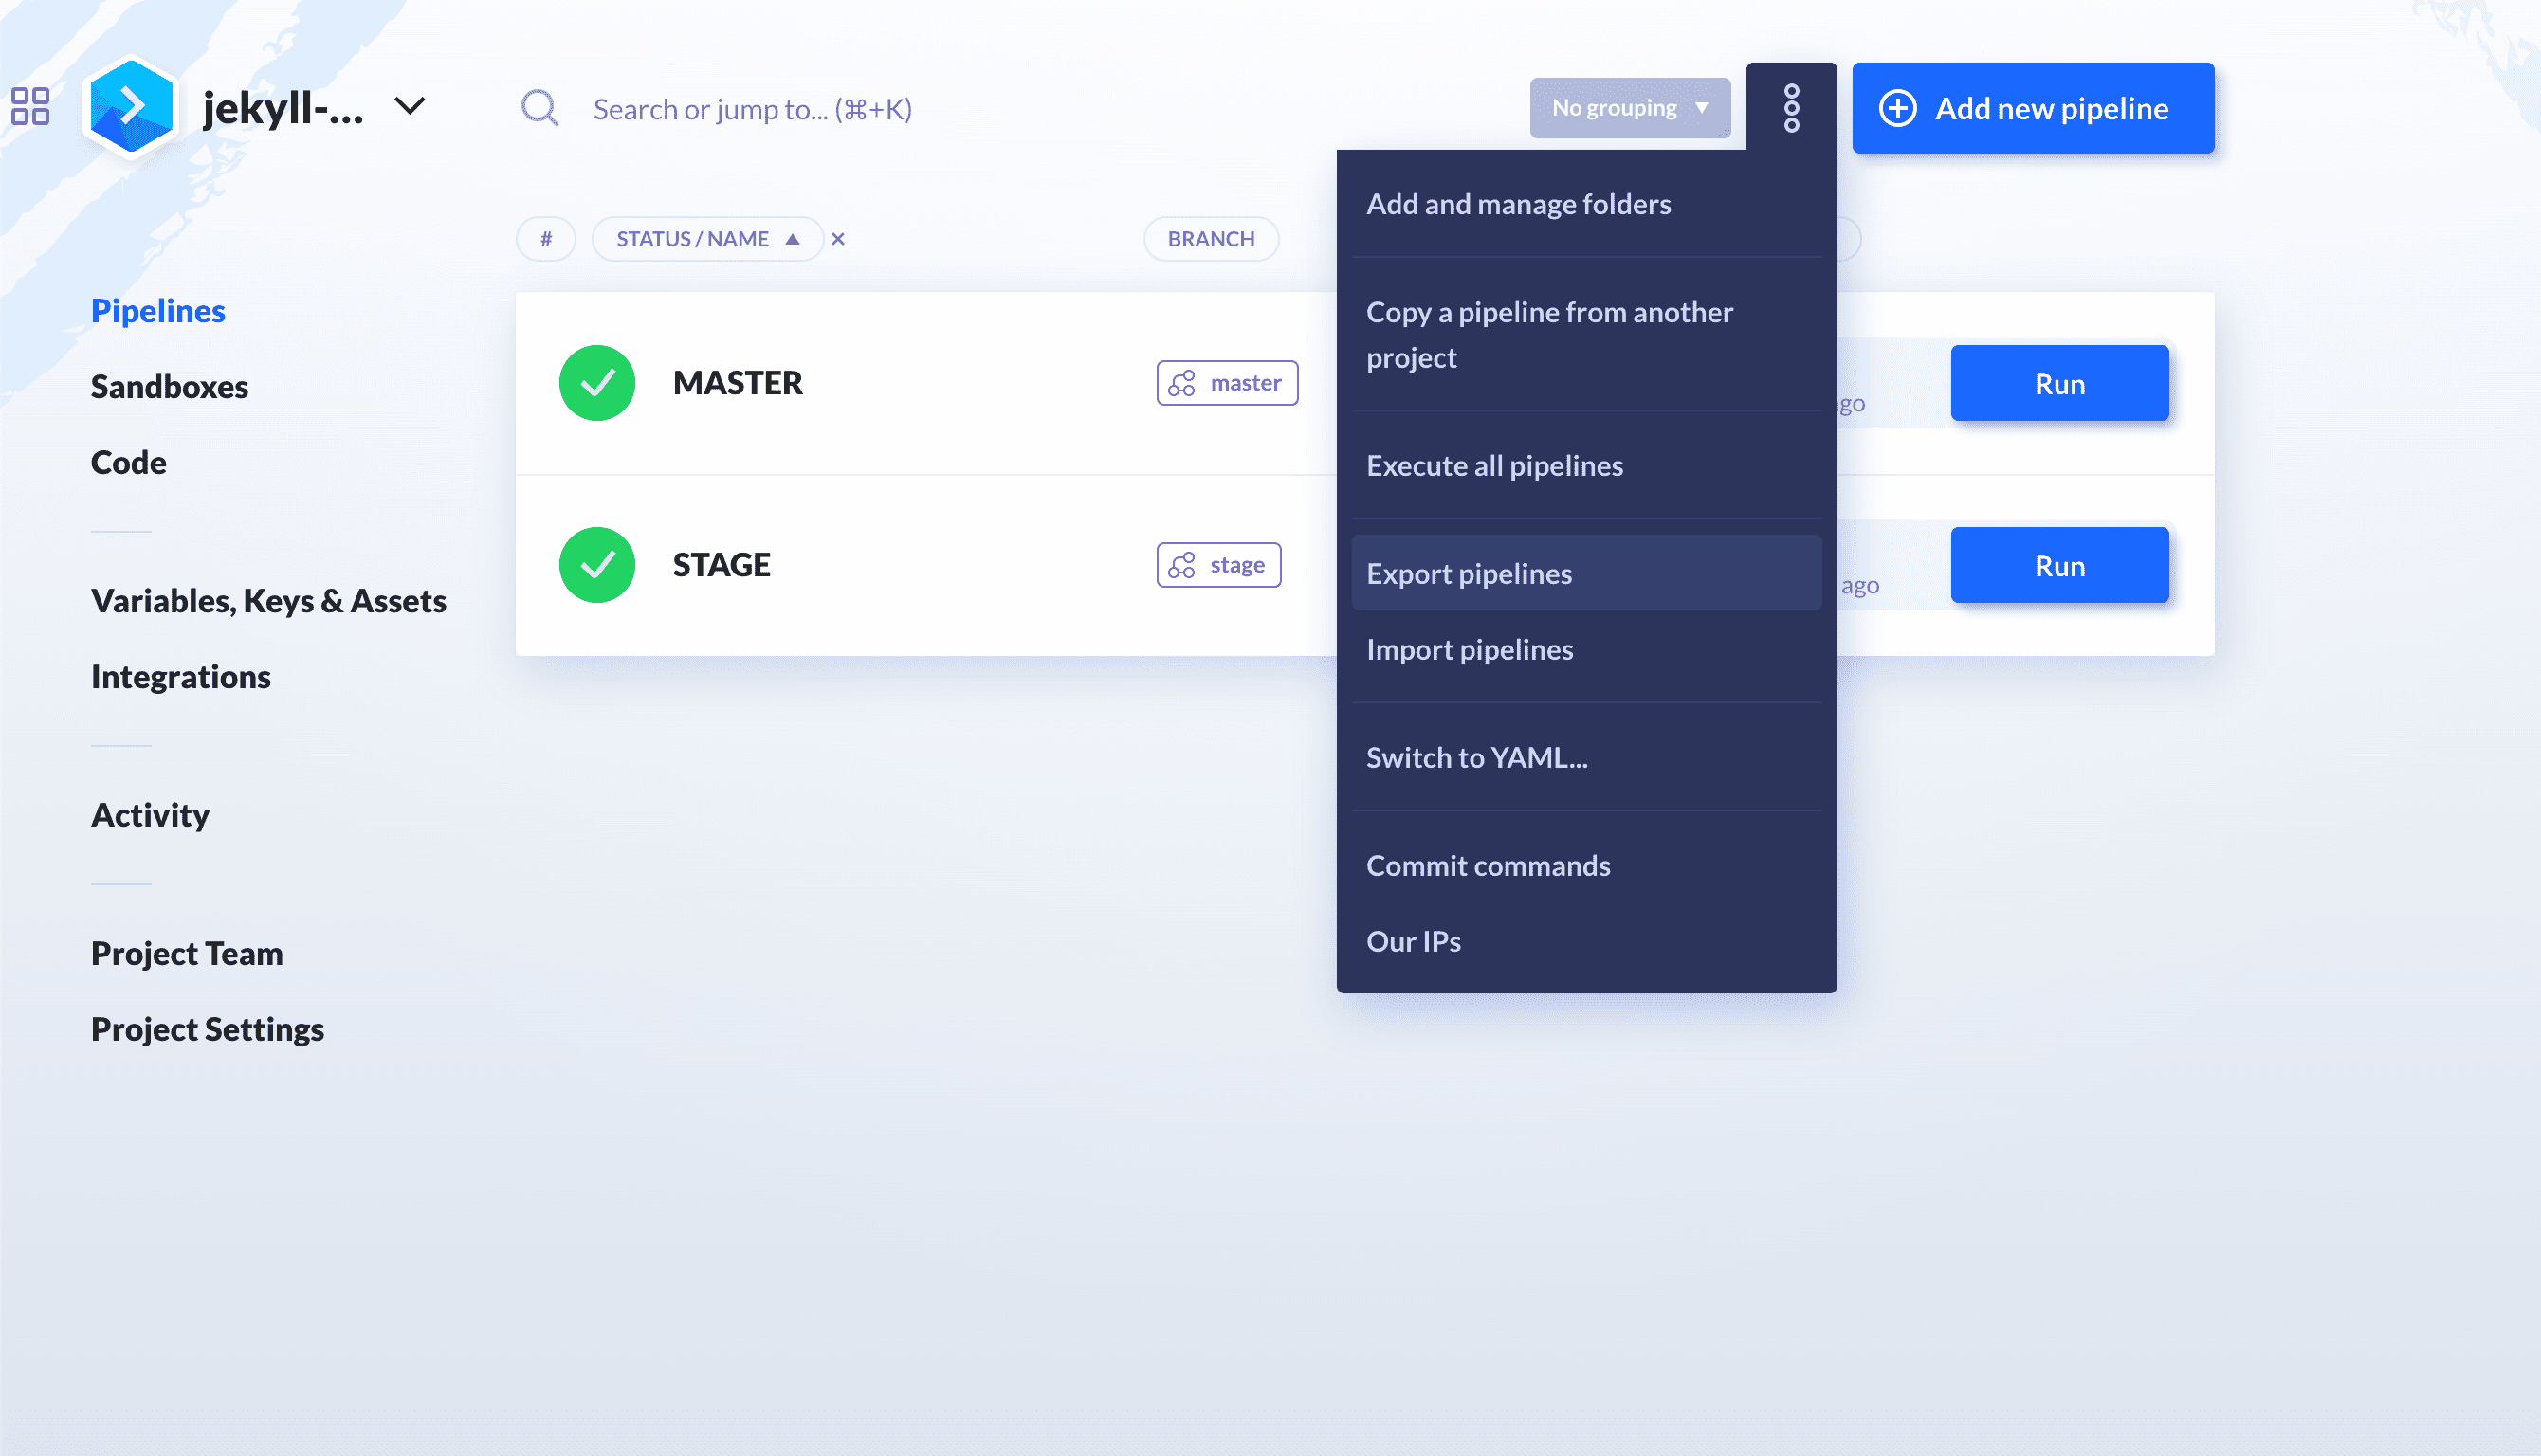 Importing the pipeline